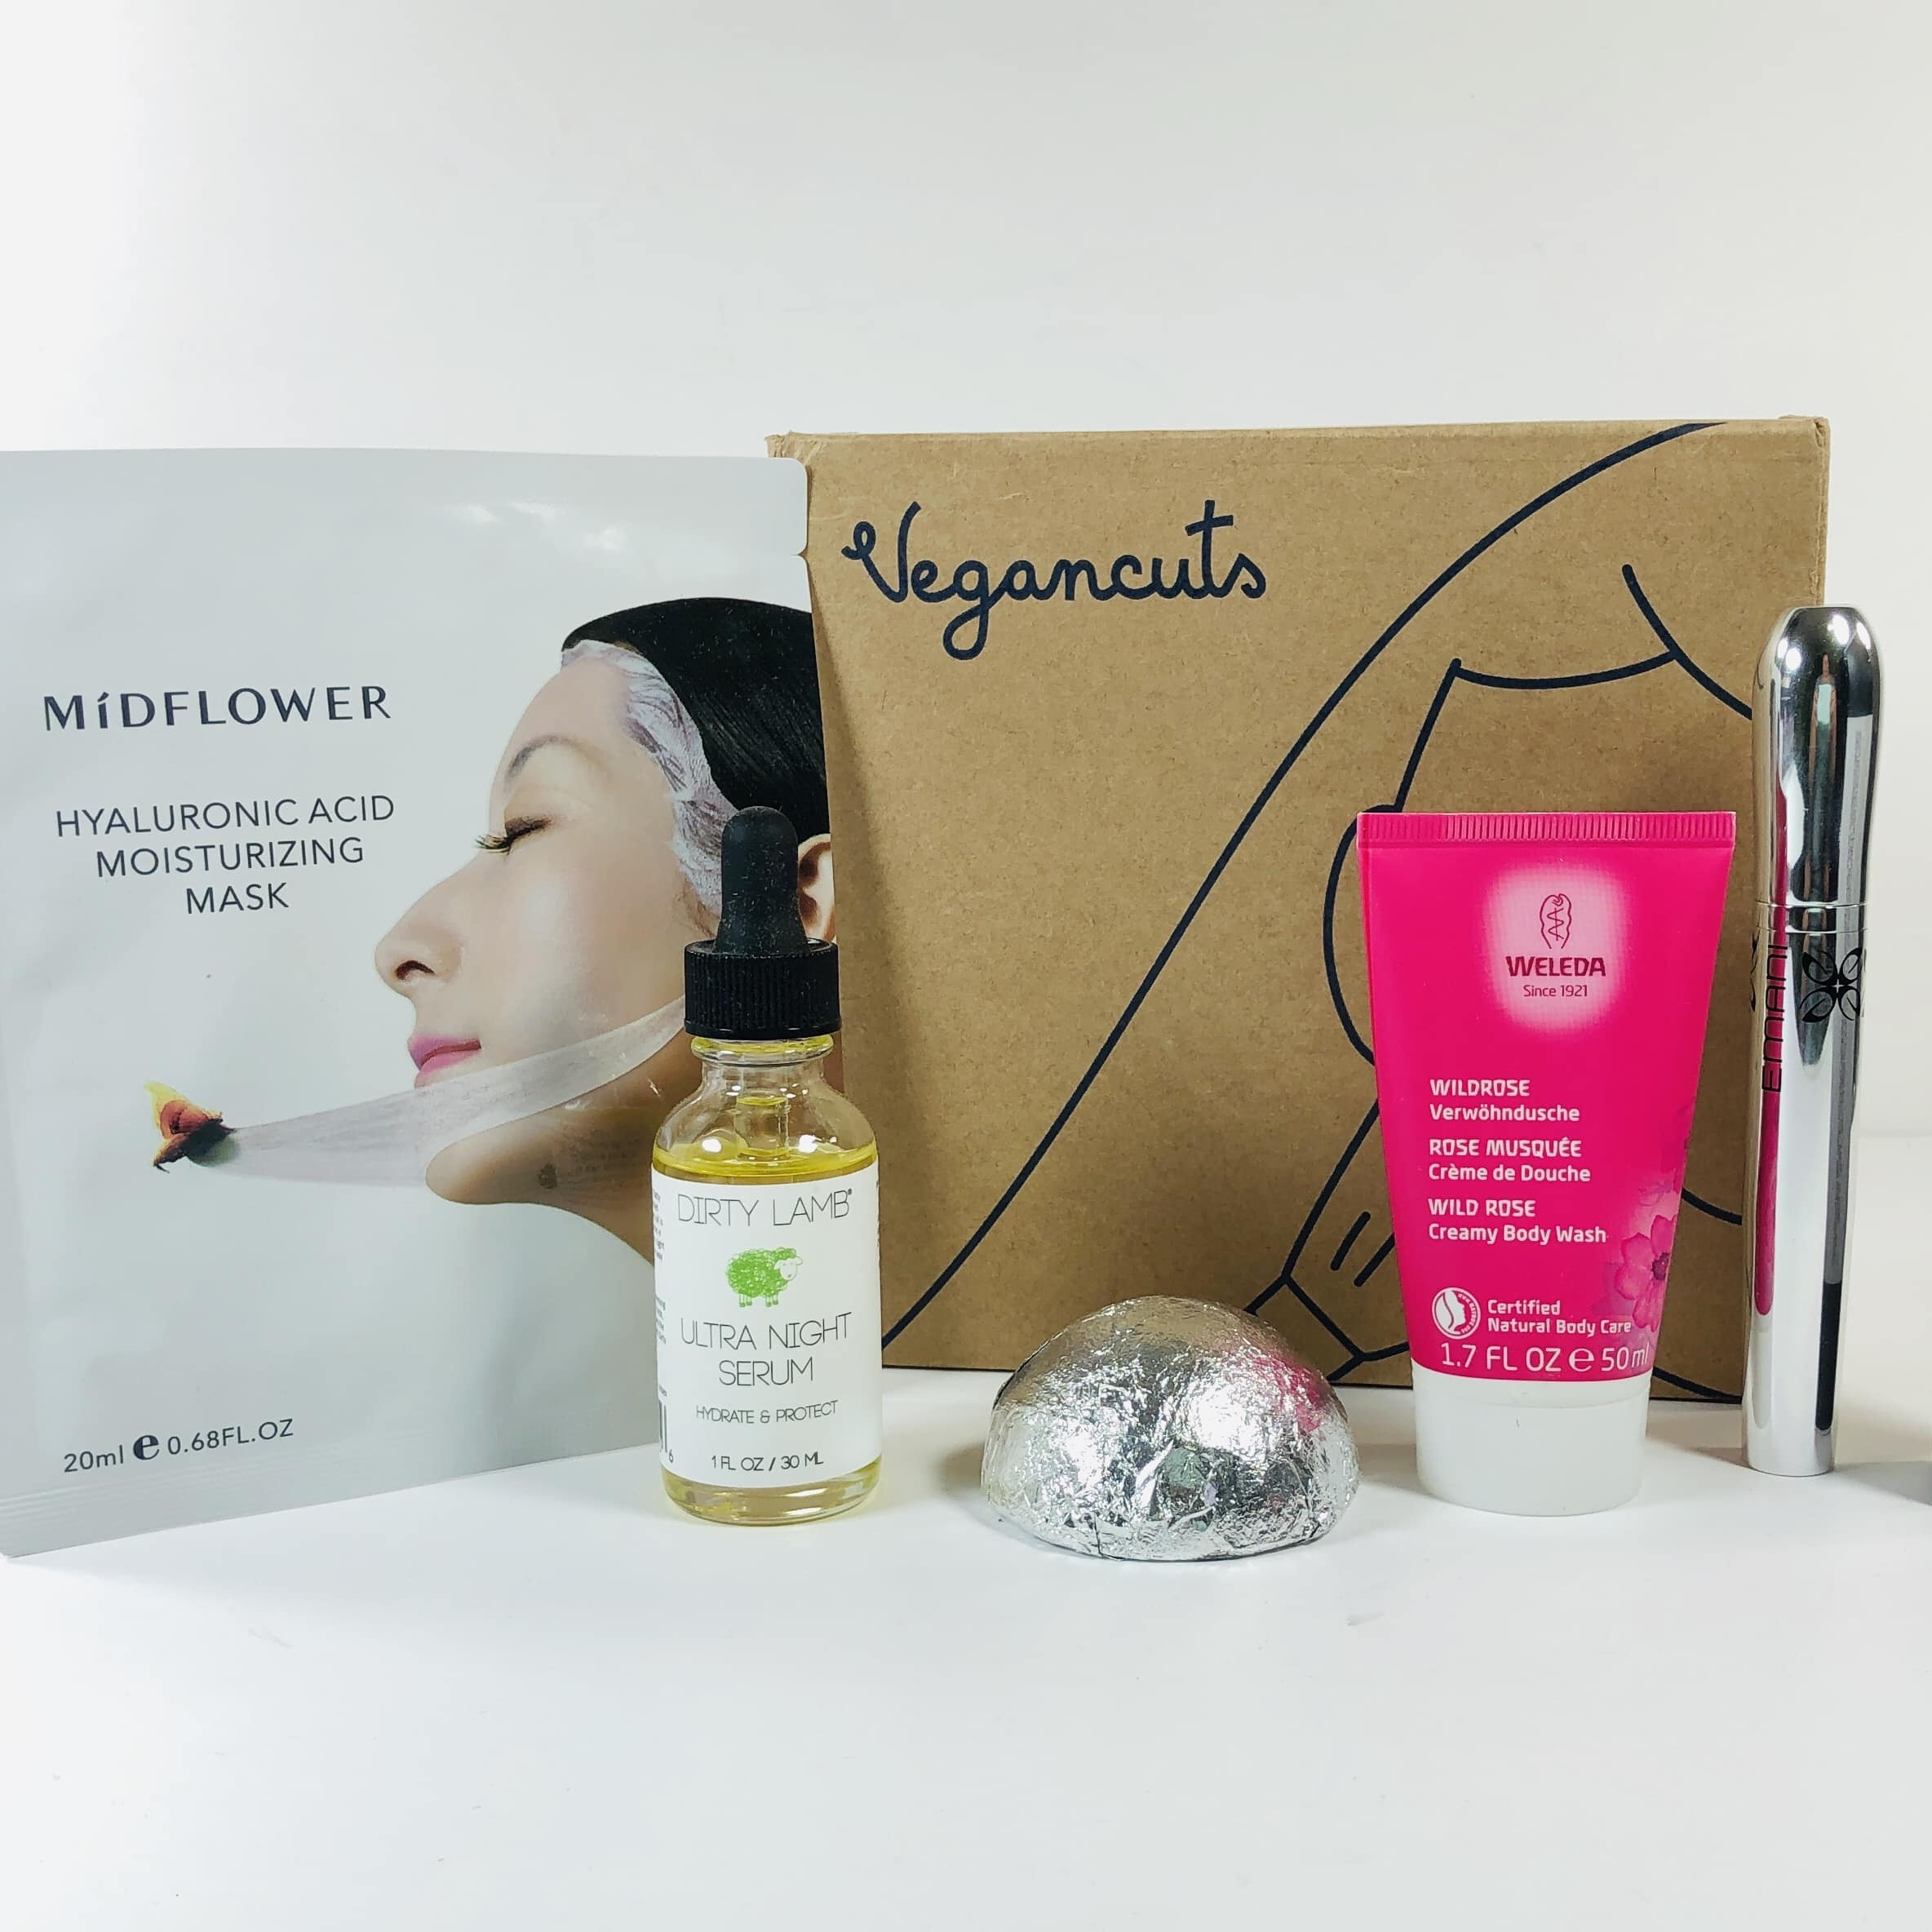 Vegancuts Beauty Box October 2019 Subscription Box Review + Coupon